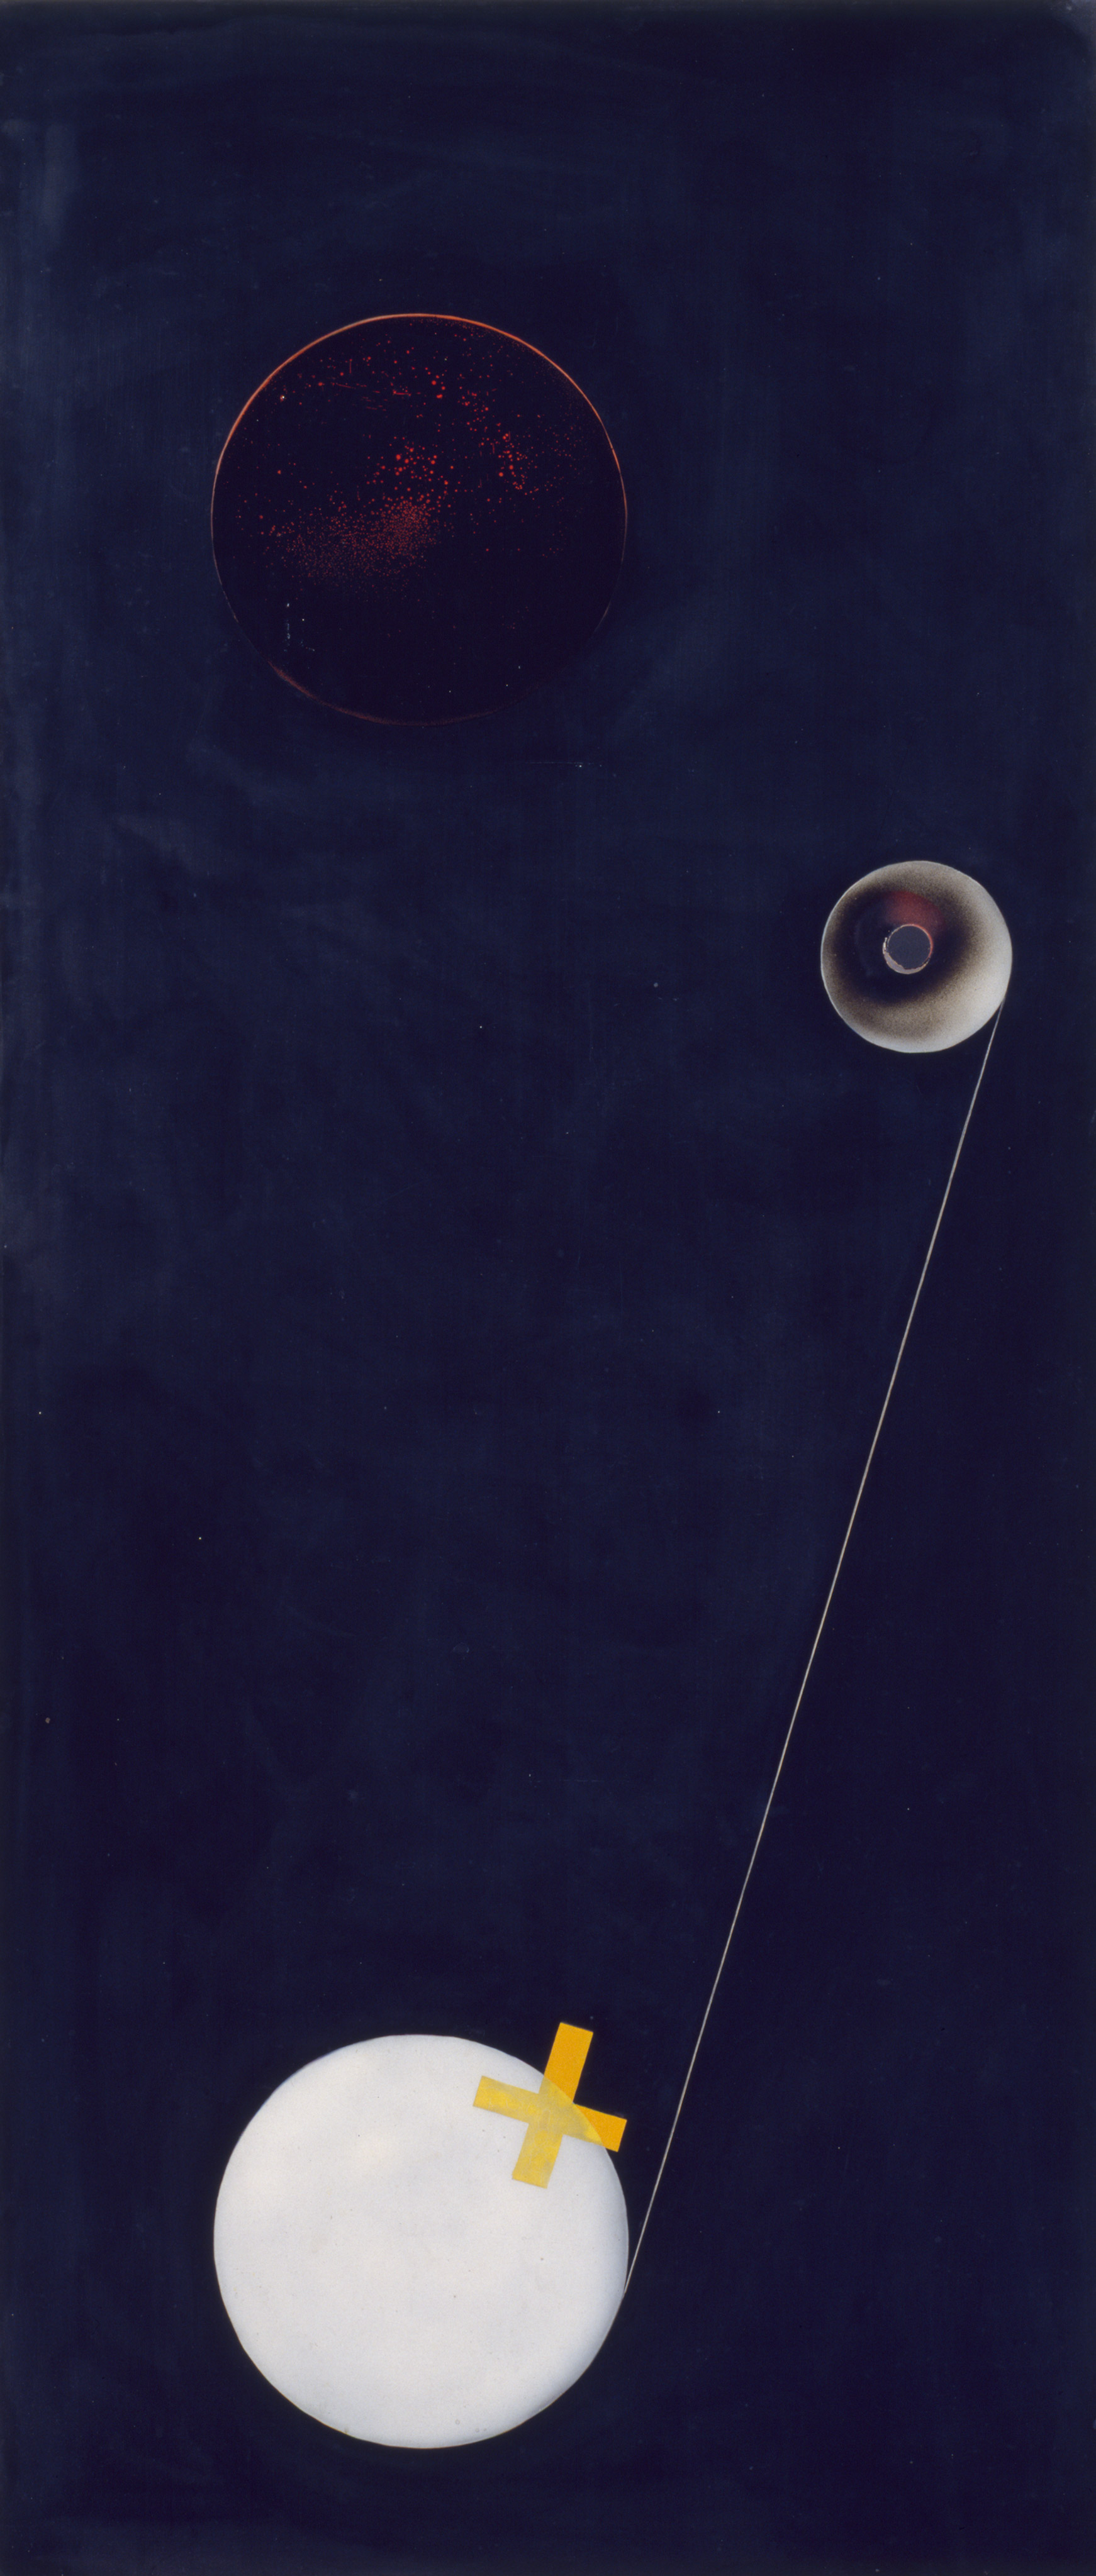 László Moholy-Nagy, T1, 1926. Oil, sprayed paint, incised lines, and paper on Trolit, 55 1/16 x 24 5/16 inches (139.8 x 61.8 cm)